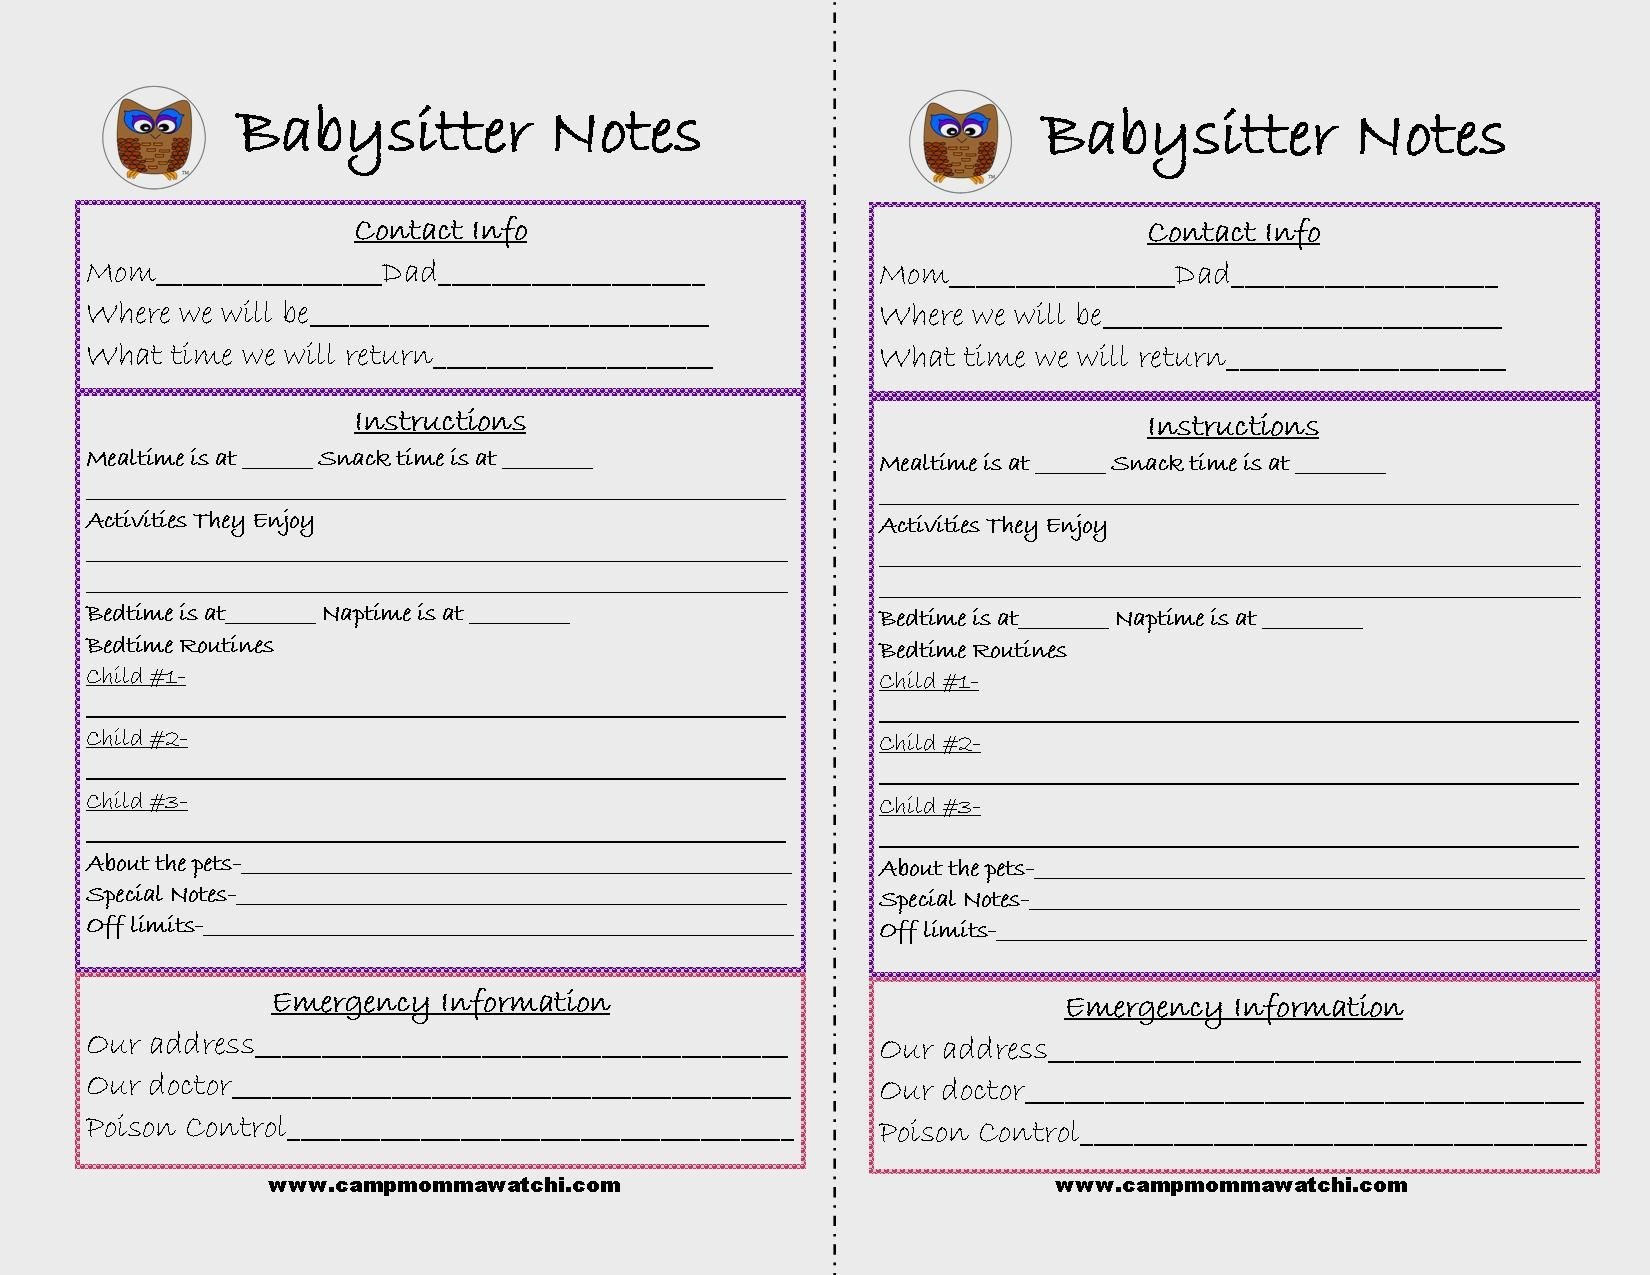 Free Printable Babysitter Notes   Camp Mommawatchi   Crafts And - Babysitter Notes Free Printable